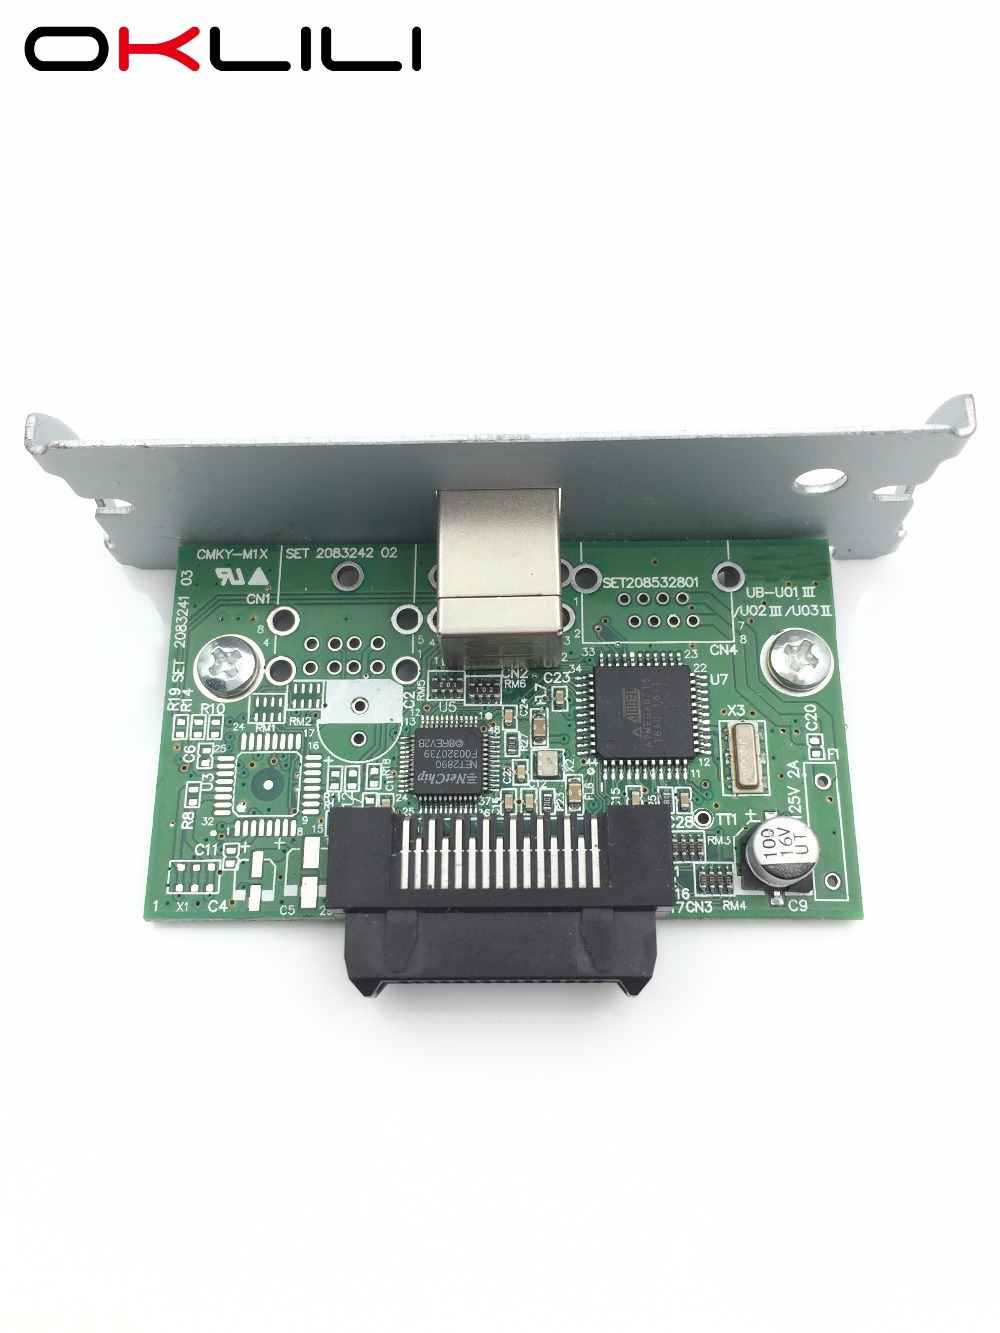 NEW C32C824131 M148E USB Port Interface Card for Epson TM-H5000II H6000IV J7000 J7100 J7500 J7600 L90 T70 T88IV T88V T90 U220